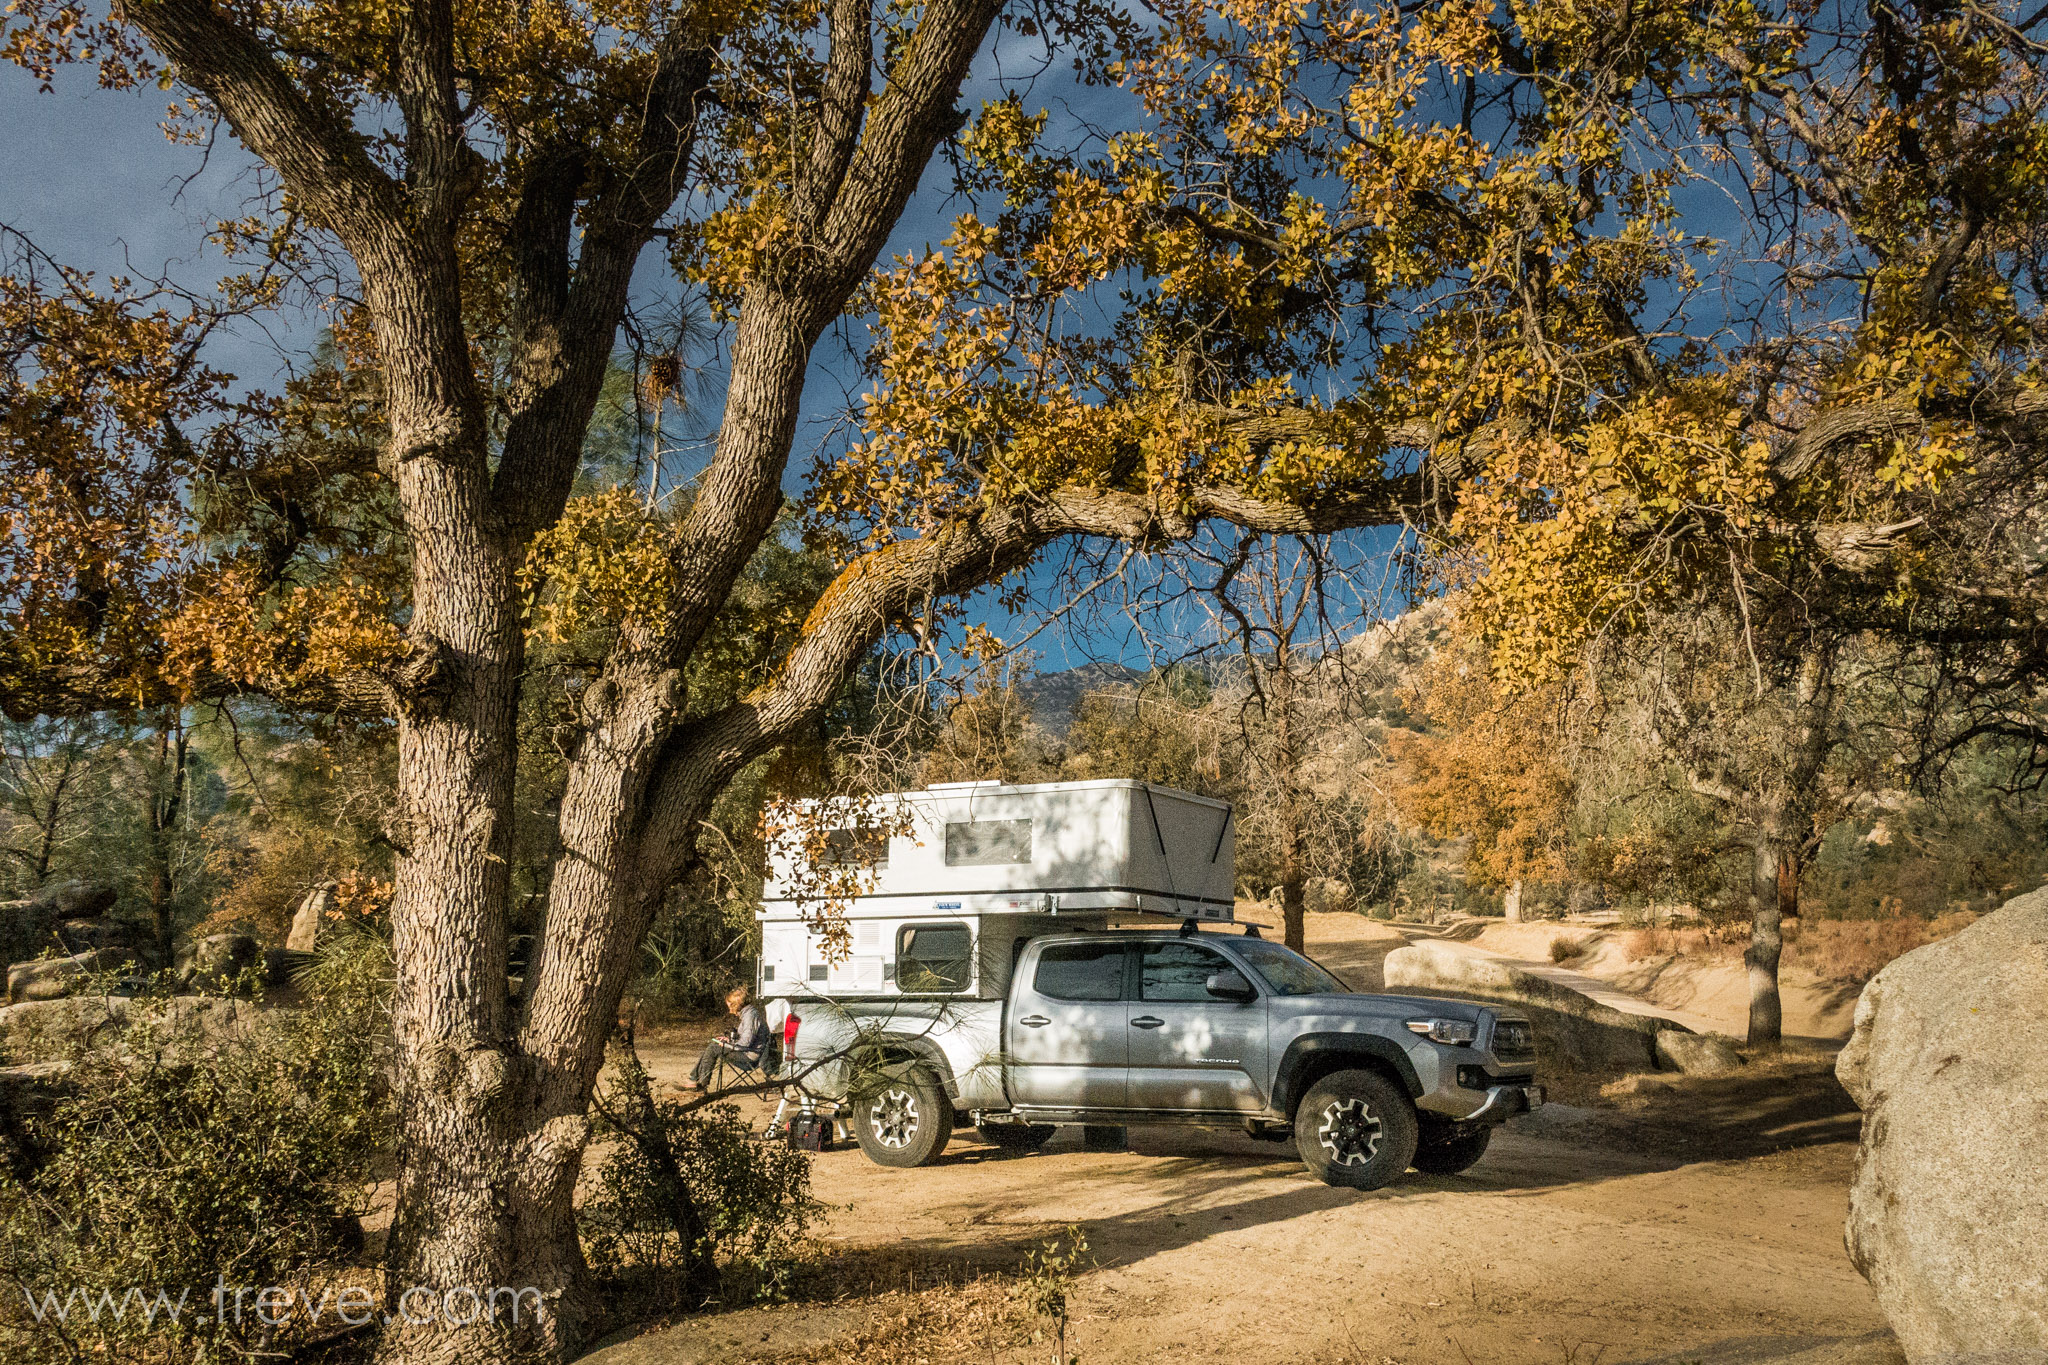 Our camp at Keyesville Special Recreation Management Area (SRMA)